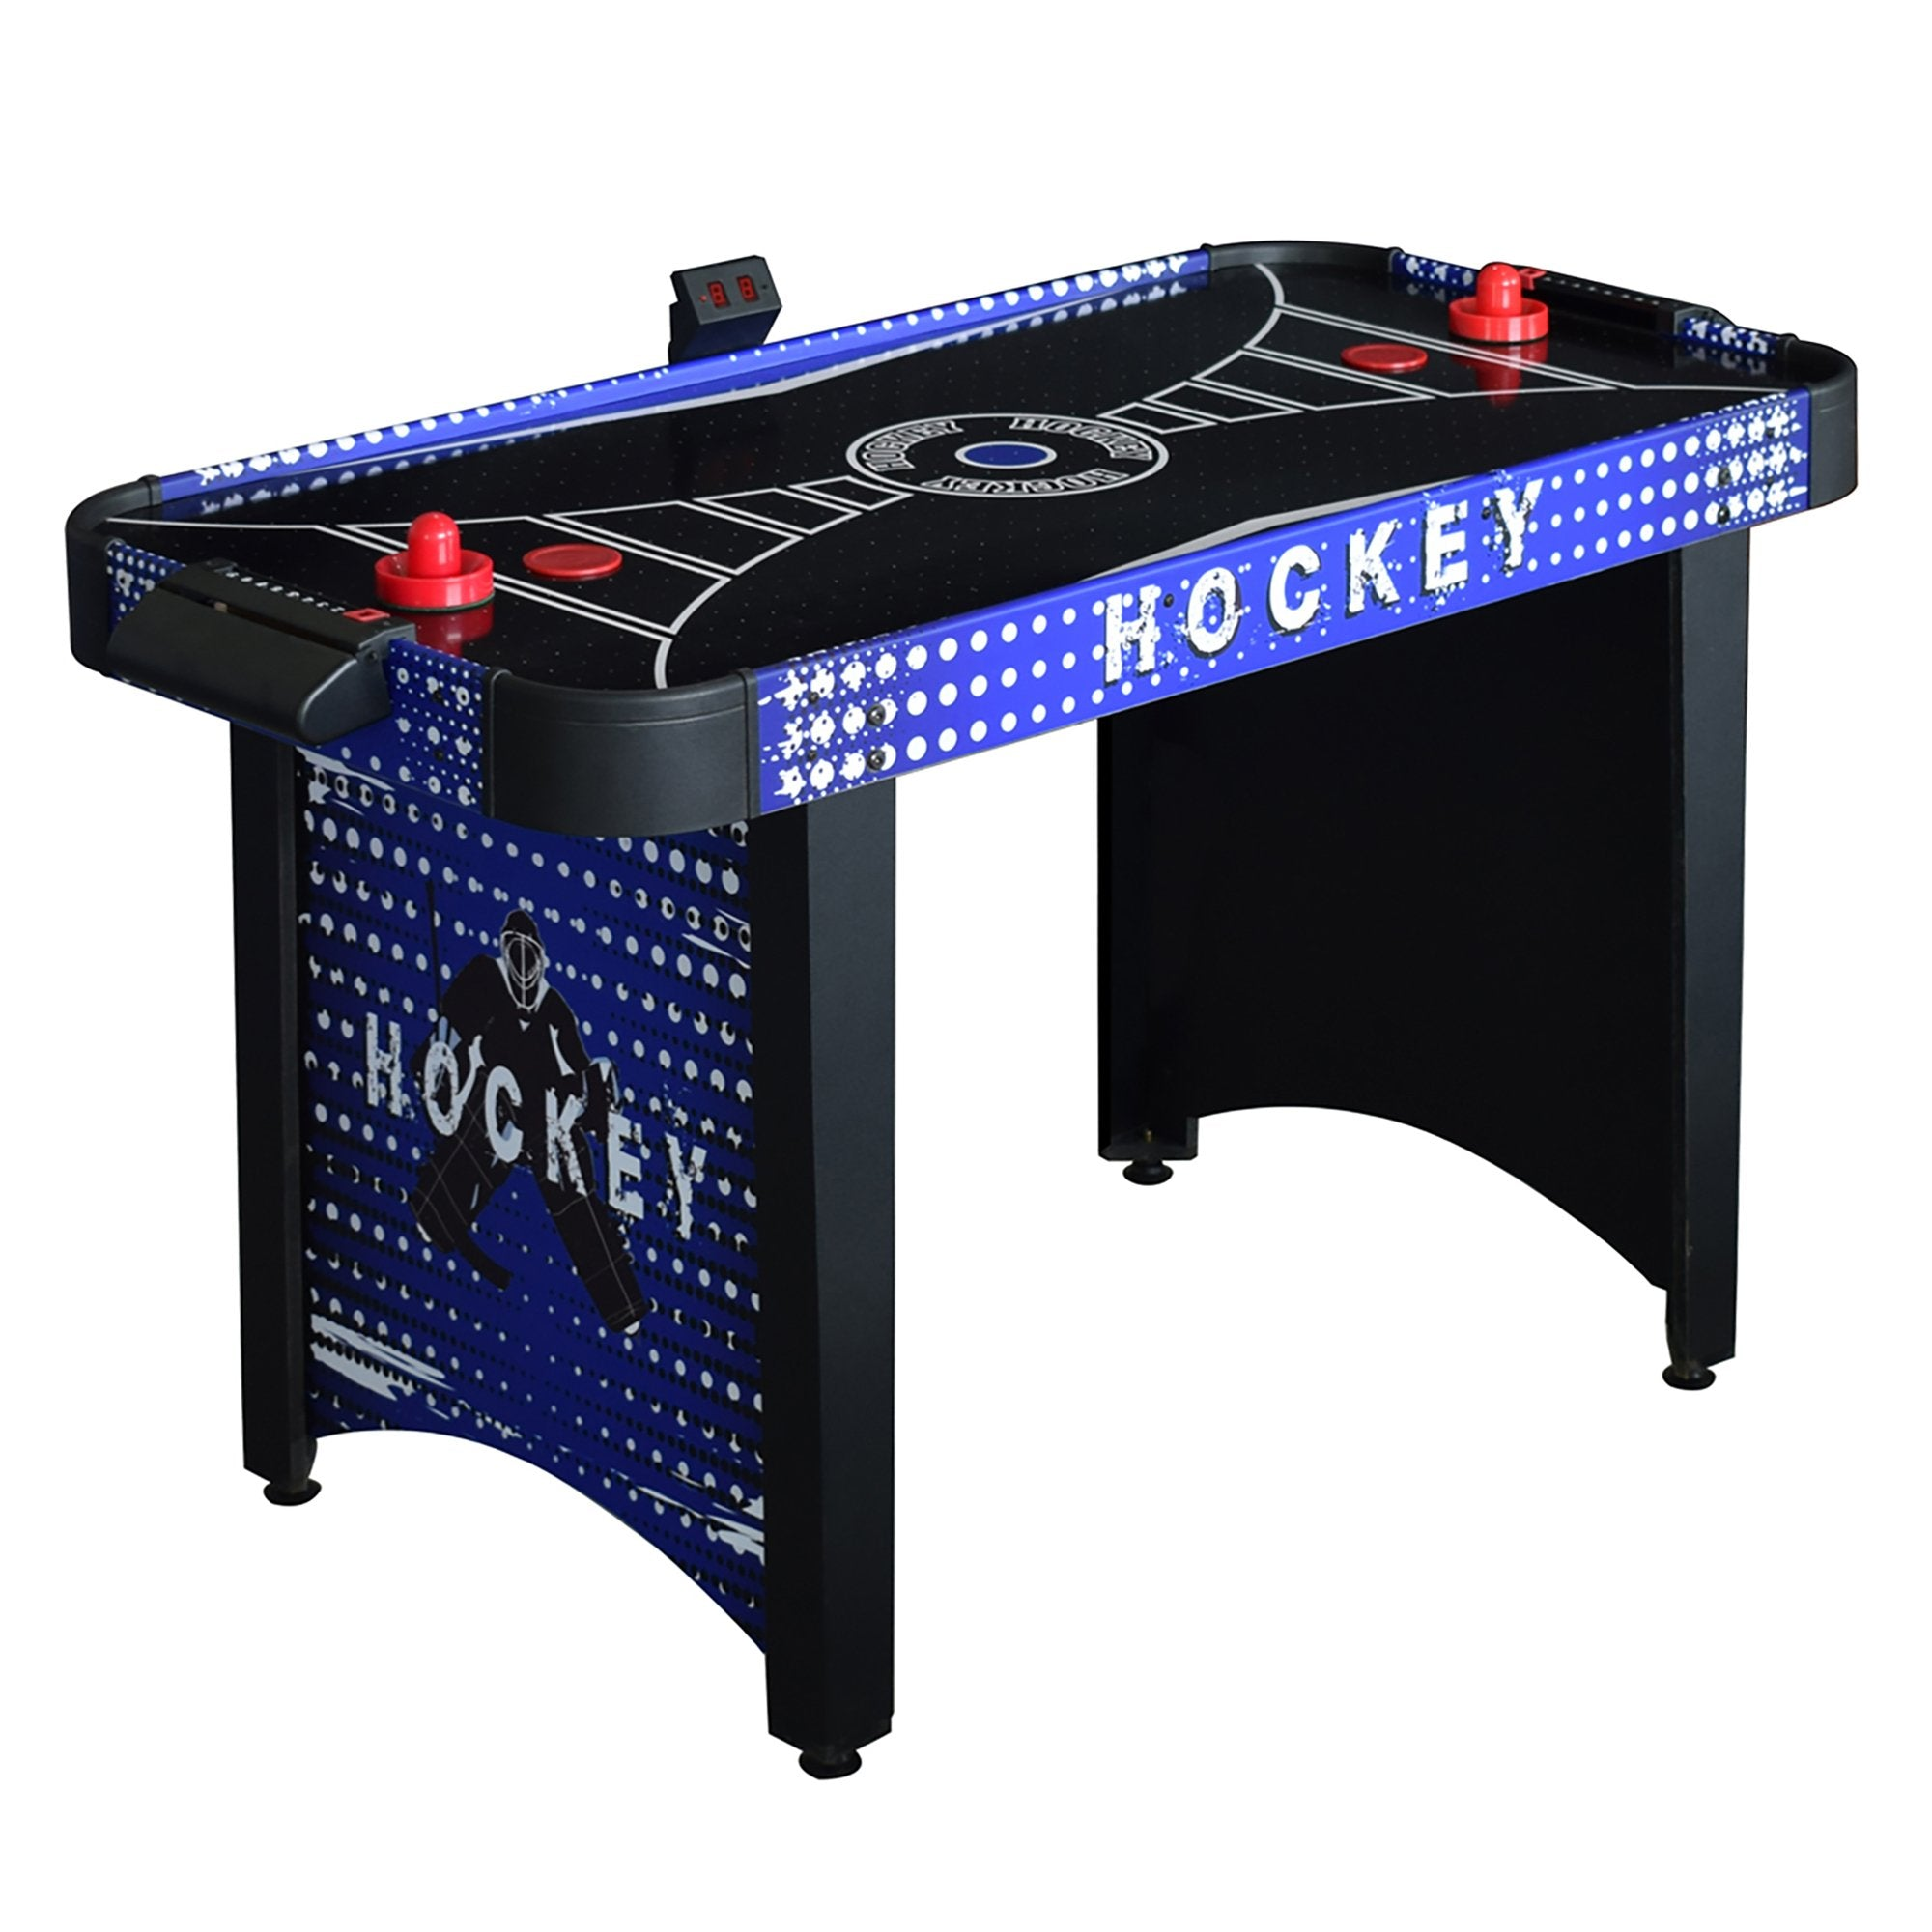 Hathaway Predator 4ft Air Hockey Table - Gaming Blaze